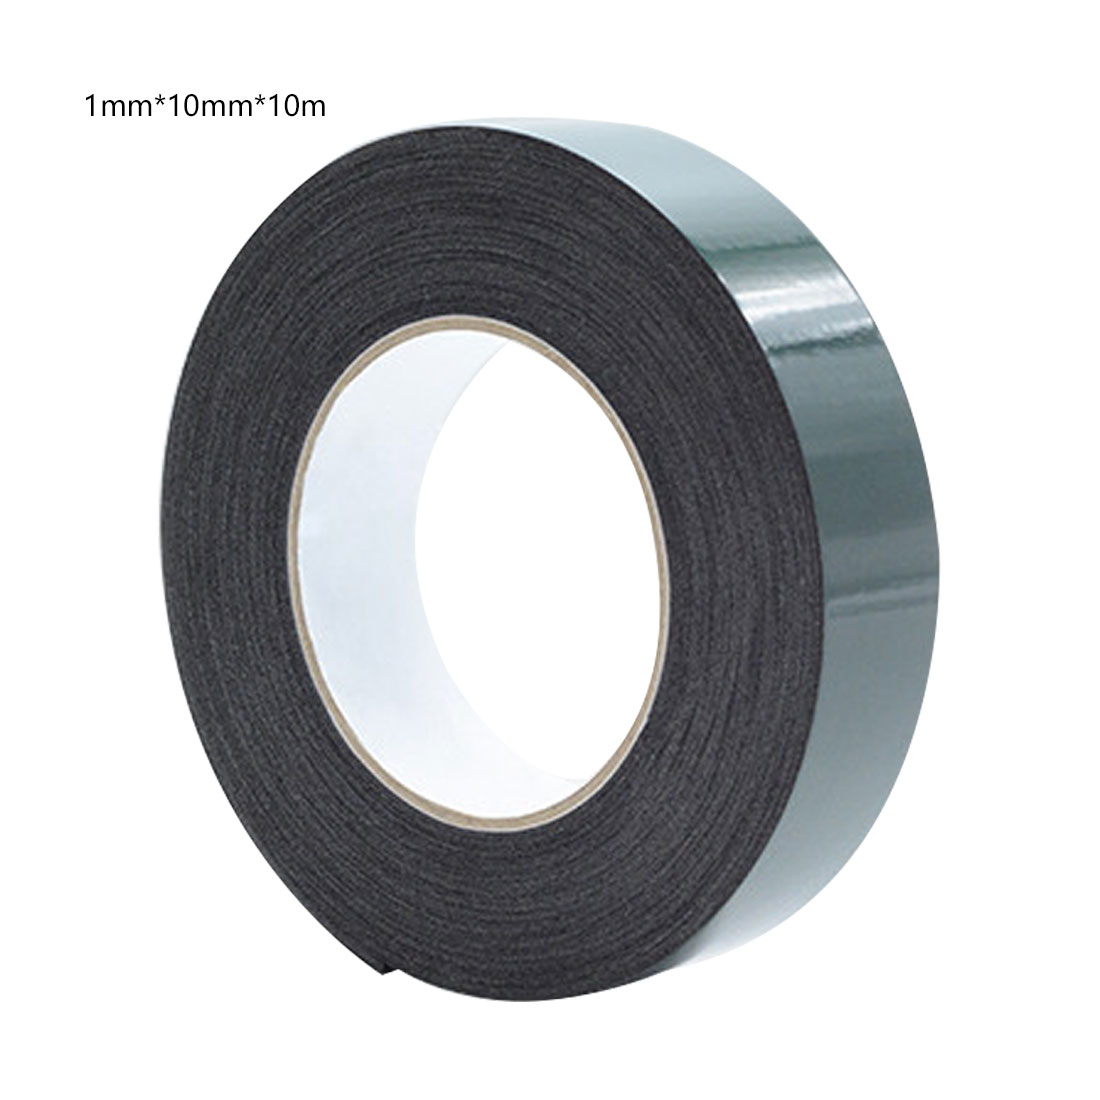 Hot!1 Pc 10m Length Strong Adhesive Waterproof Double Sided Tape High Quality 10mm Width Foam Green Tape Trim Home Car